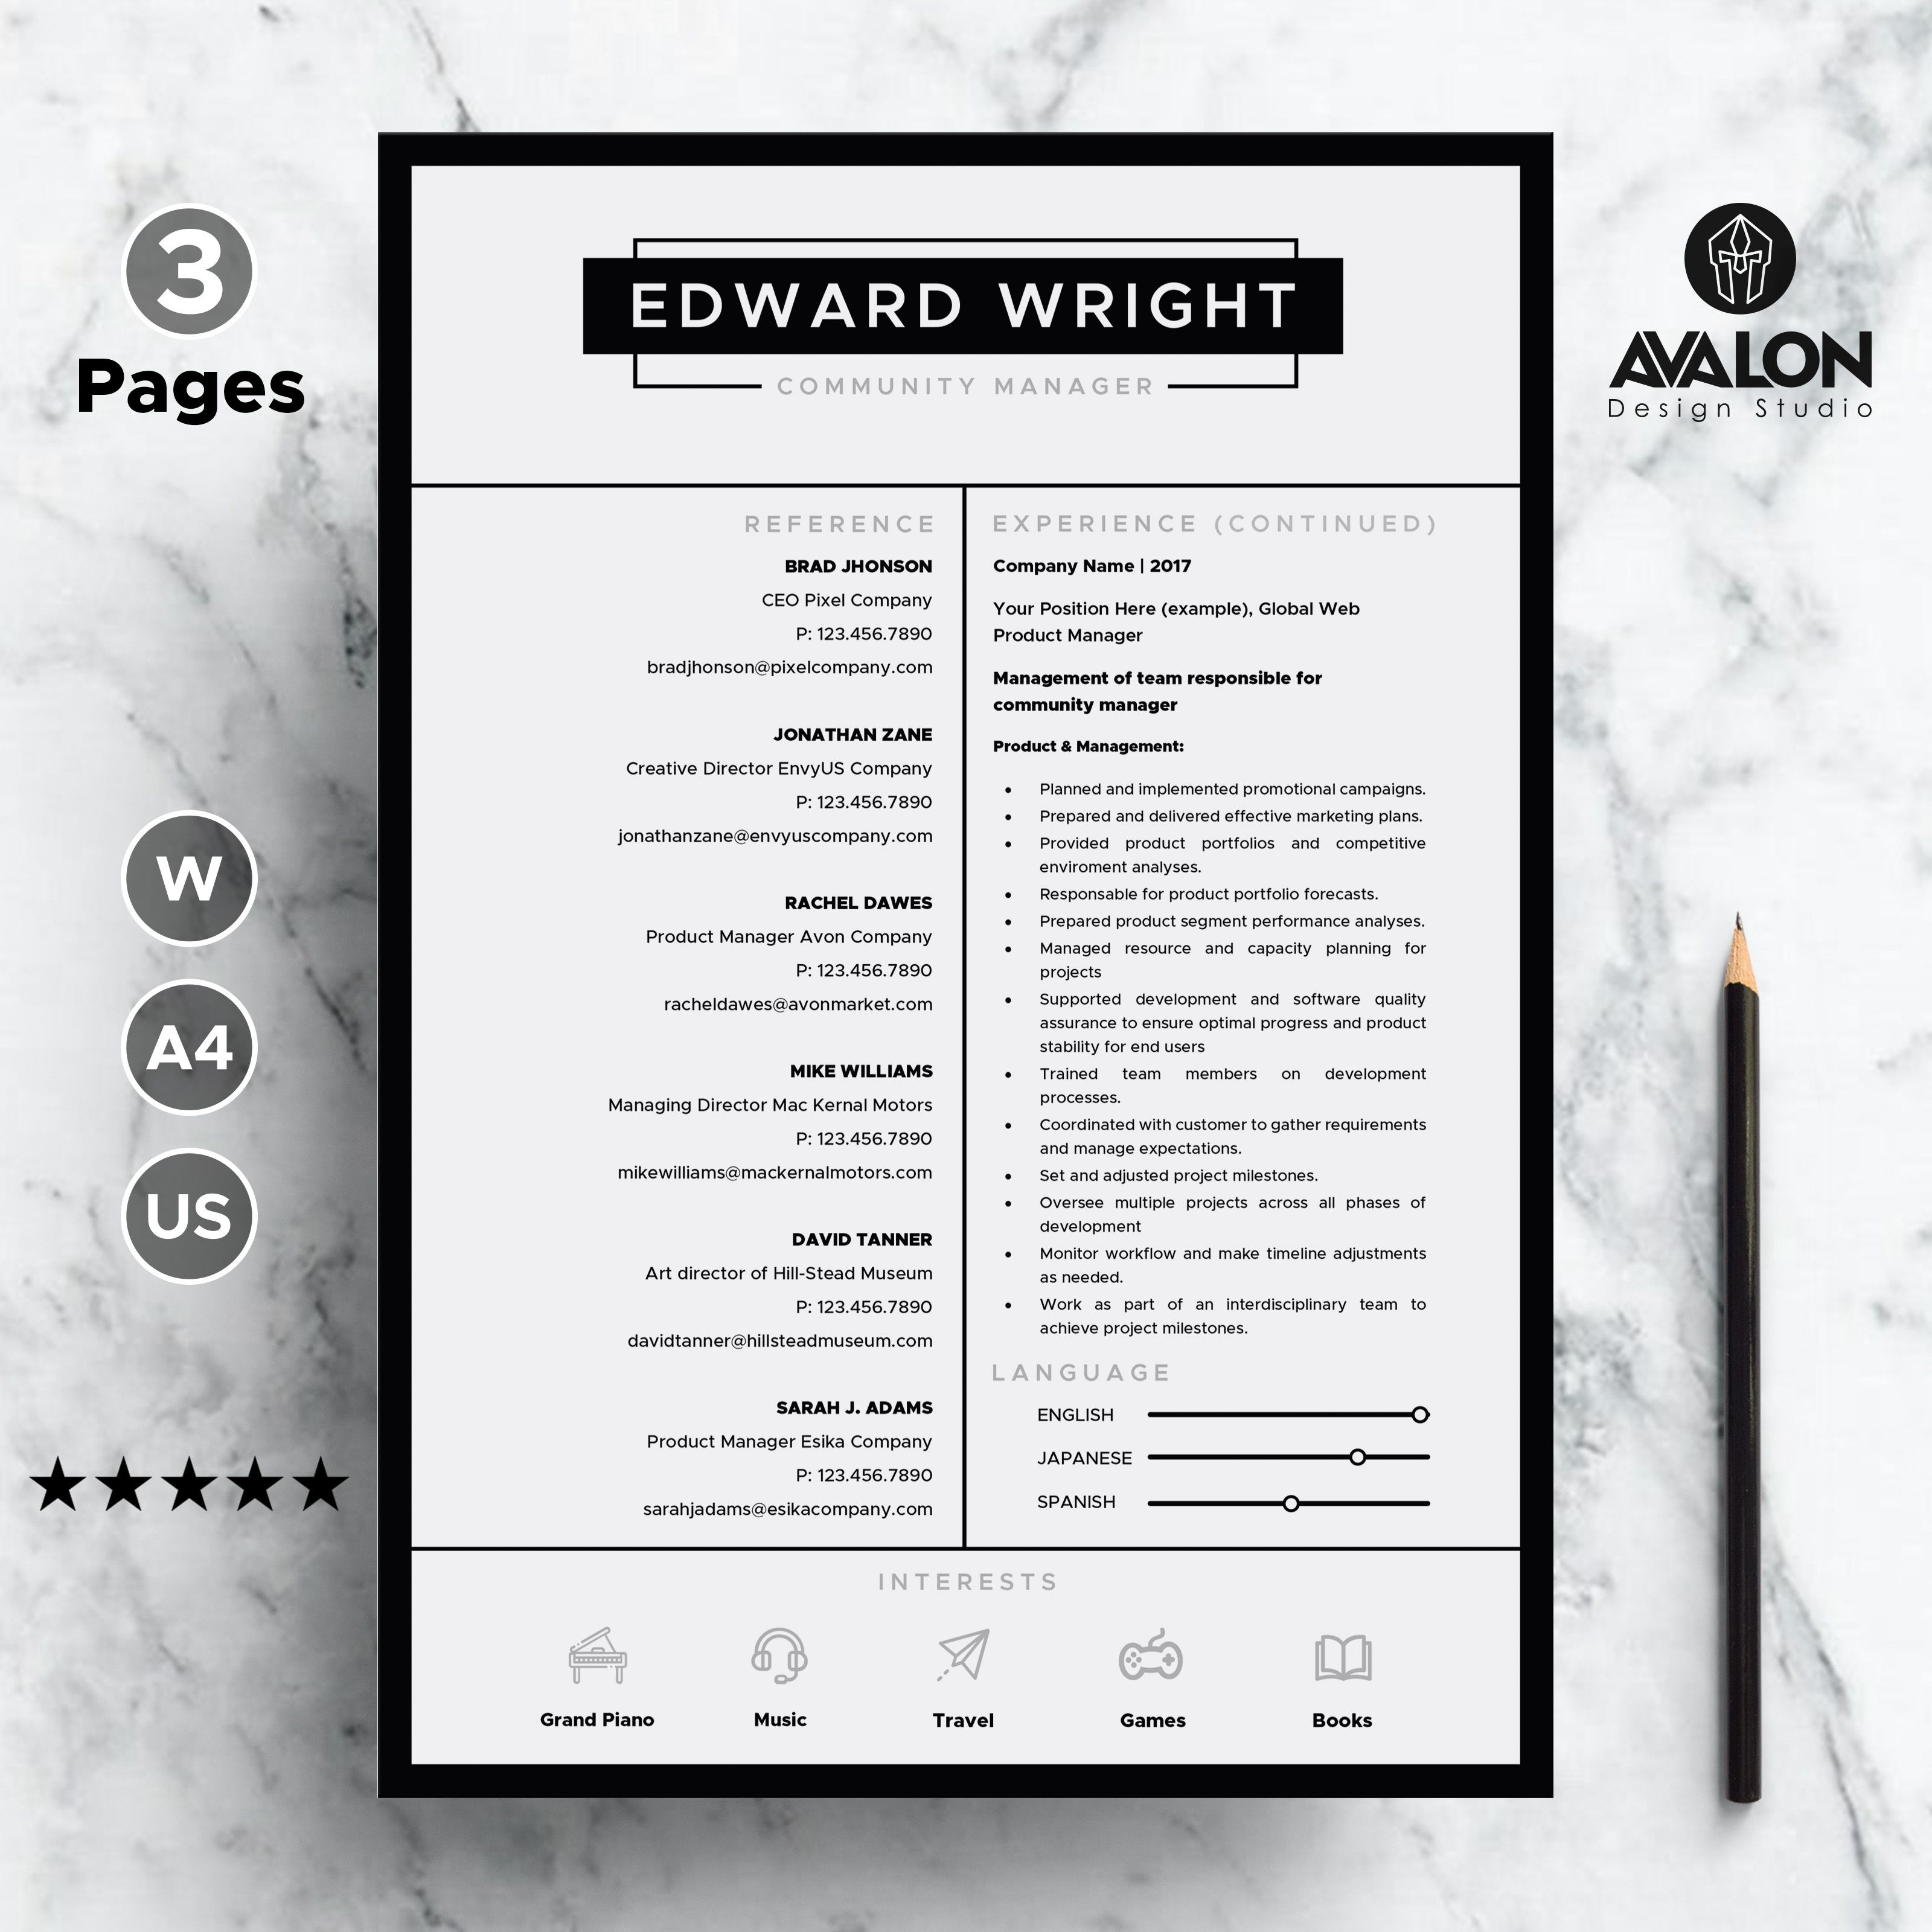 professional resume template for ms word, 3 pages, modern world bank cv format pdf itil incident management chemical engineering skills